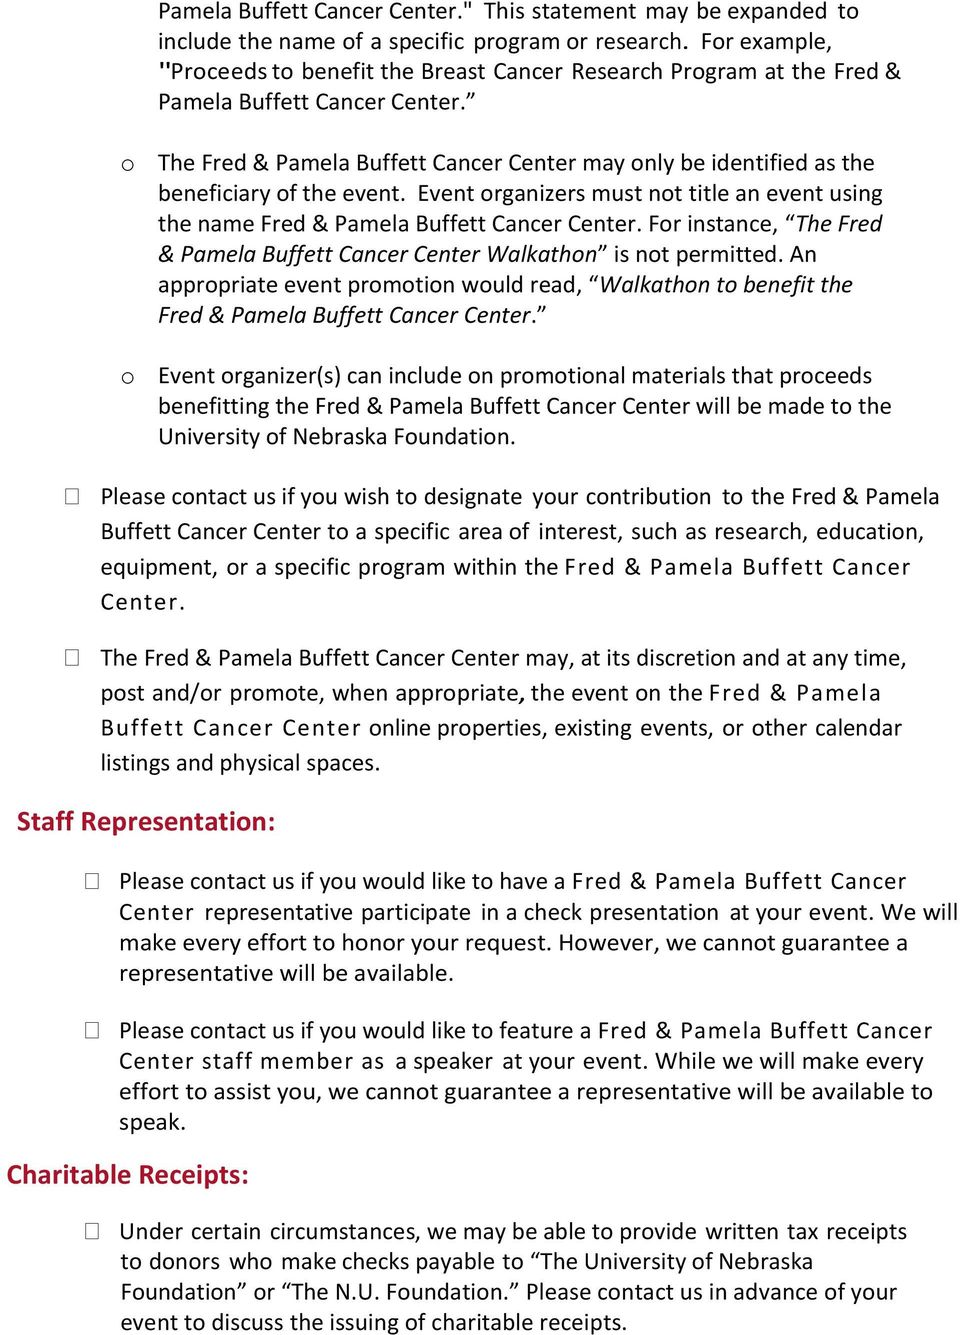 o The Fred & Pamela Buffett Cancer Center may only be identified as the beneficiary of the event. Event organizers must not title an event using the name Fred & Pamela Buffett Cancer Center.